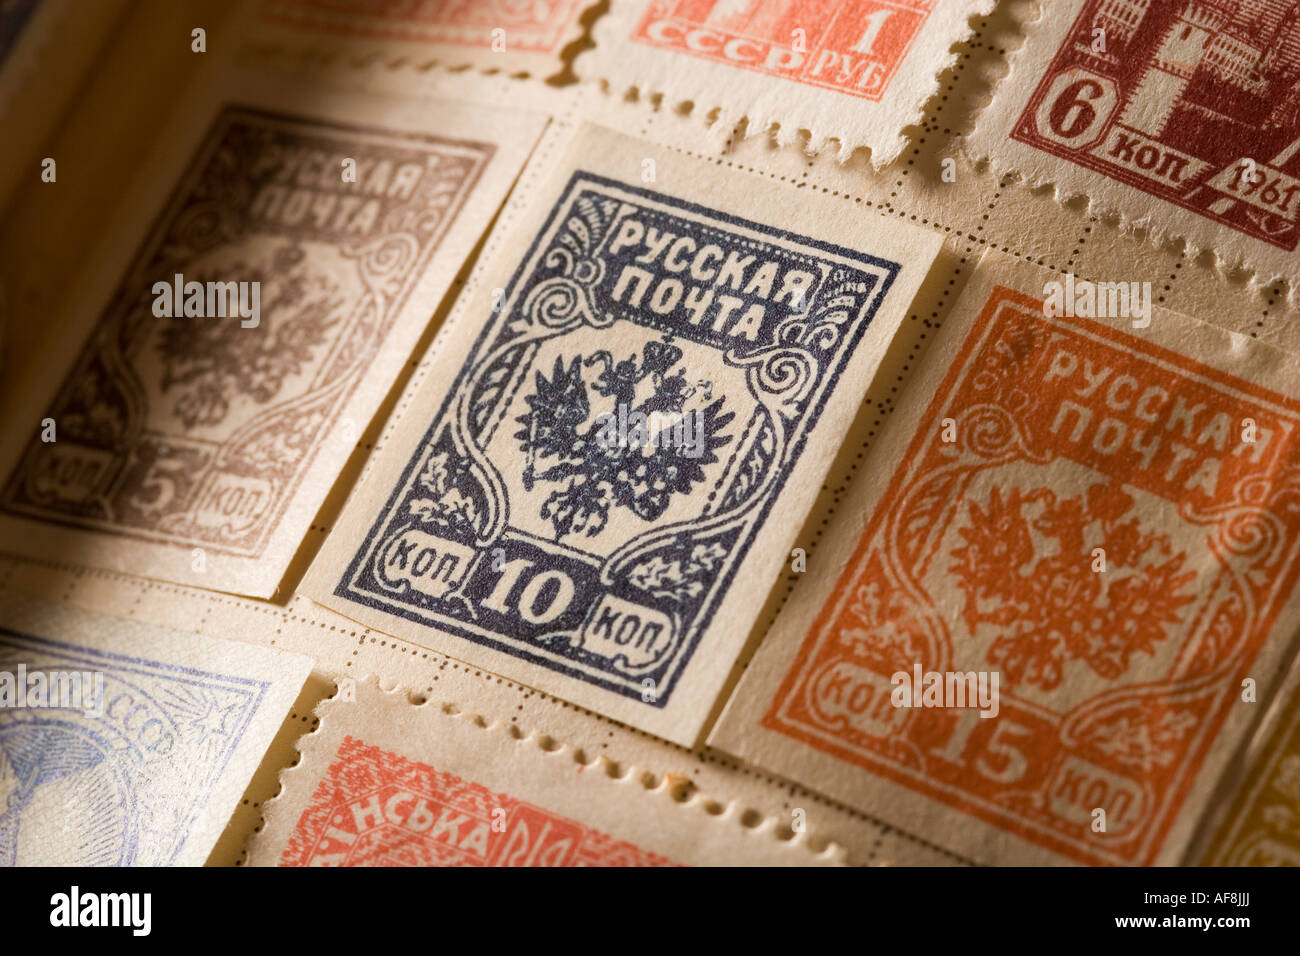 Russian Stamp Stock Photos & Russian Stamp Stock Images - Alamy